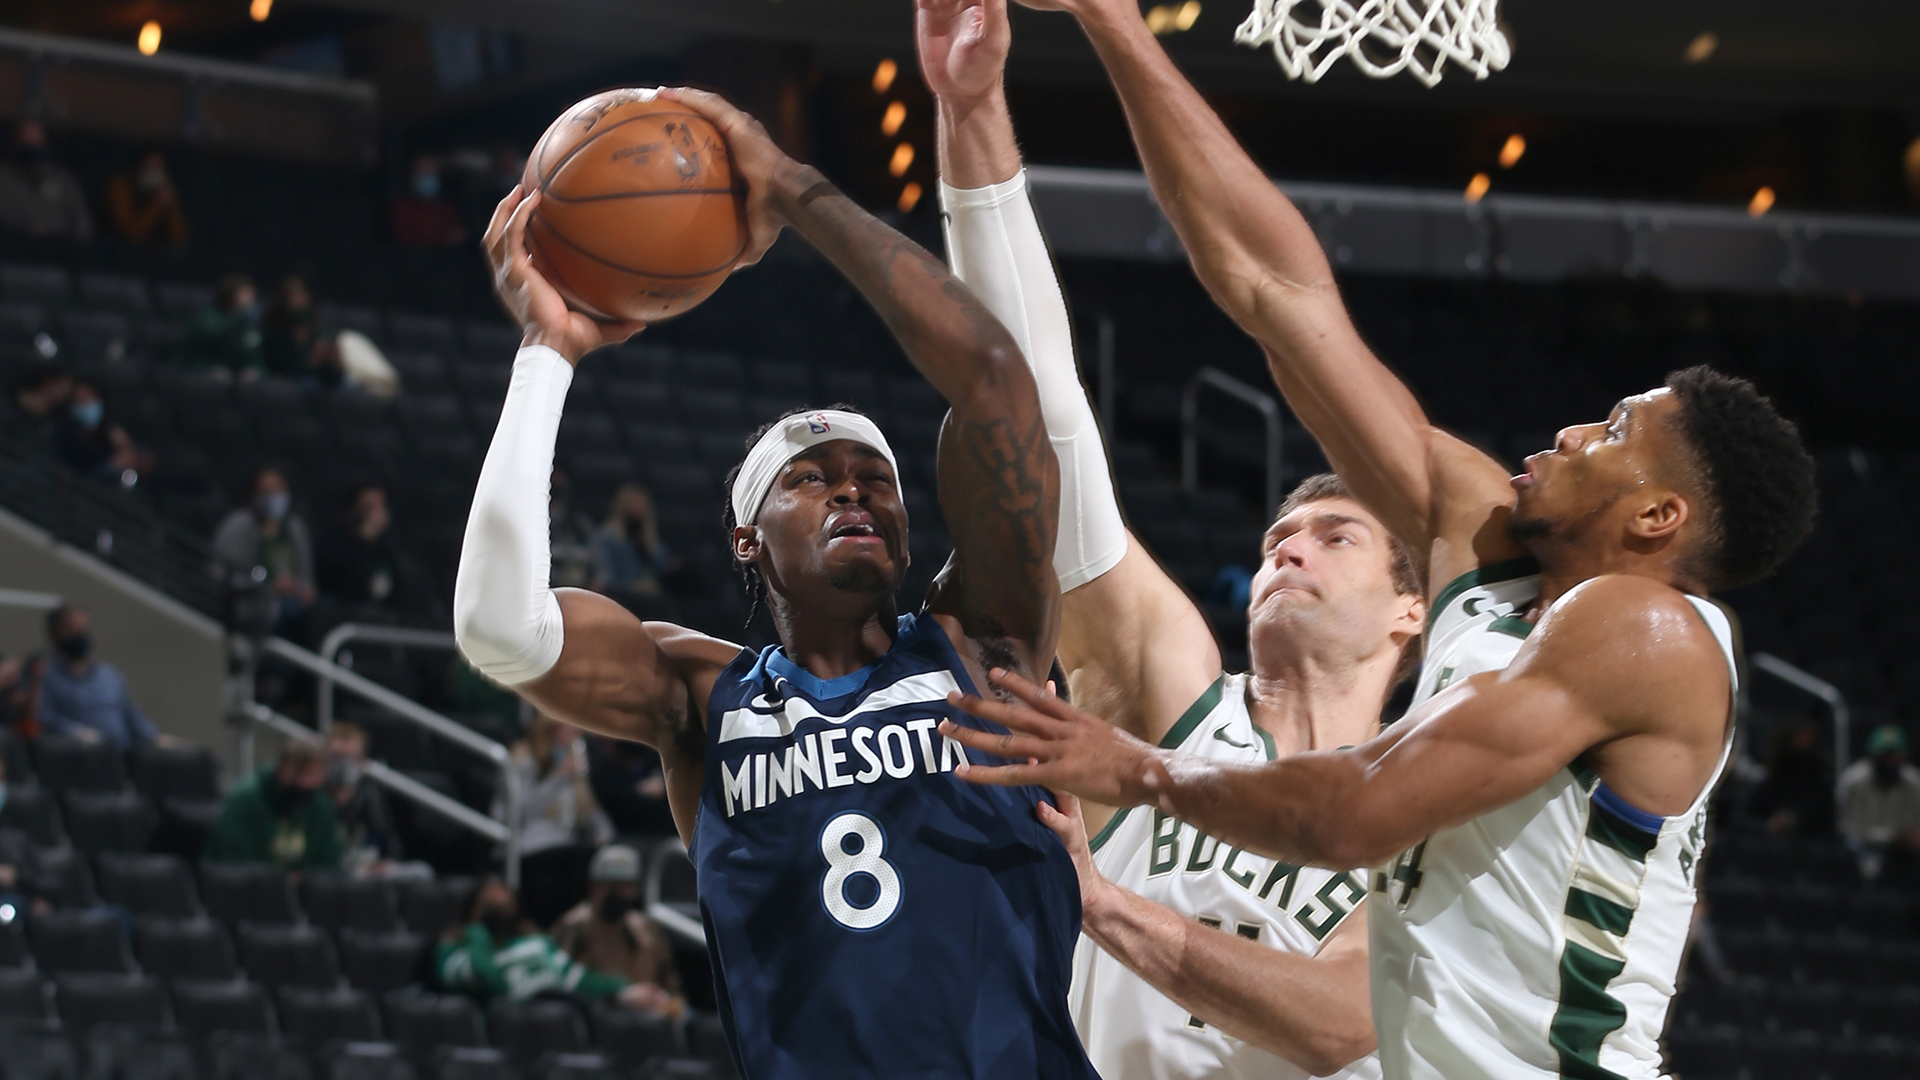 Game Recap: Bucks 139 - Timberwolves 112